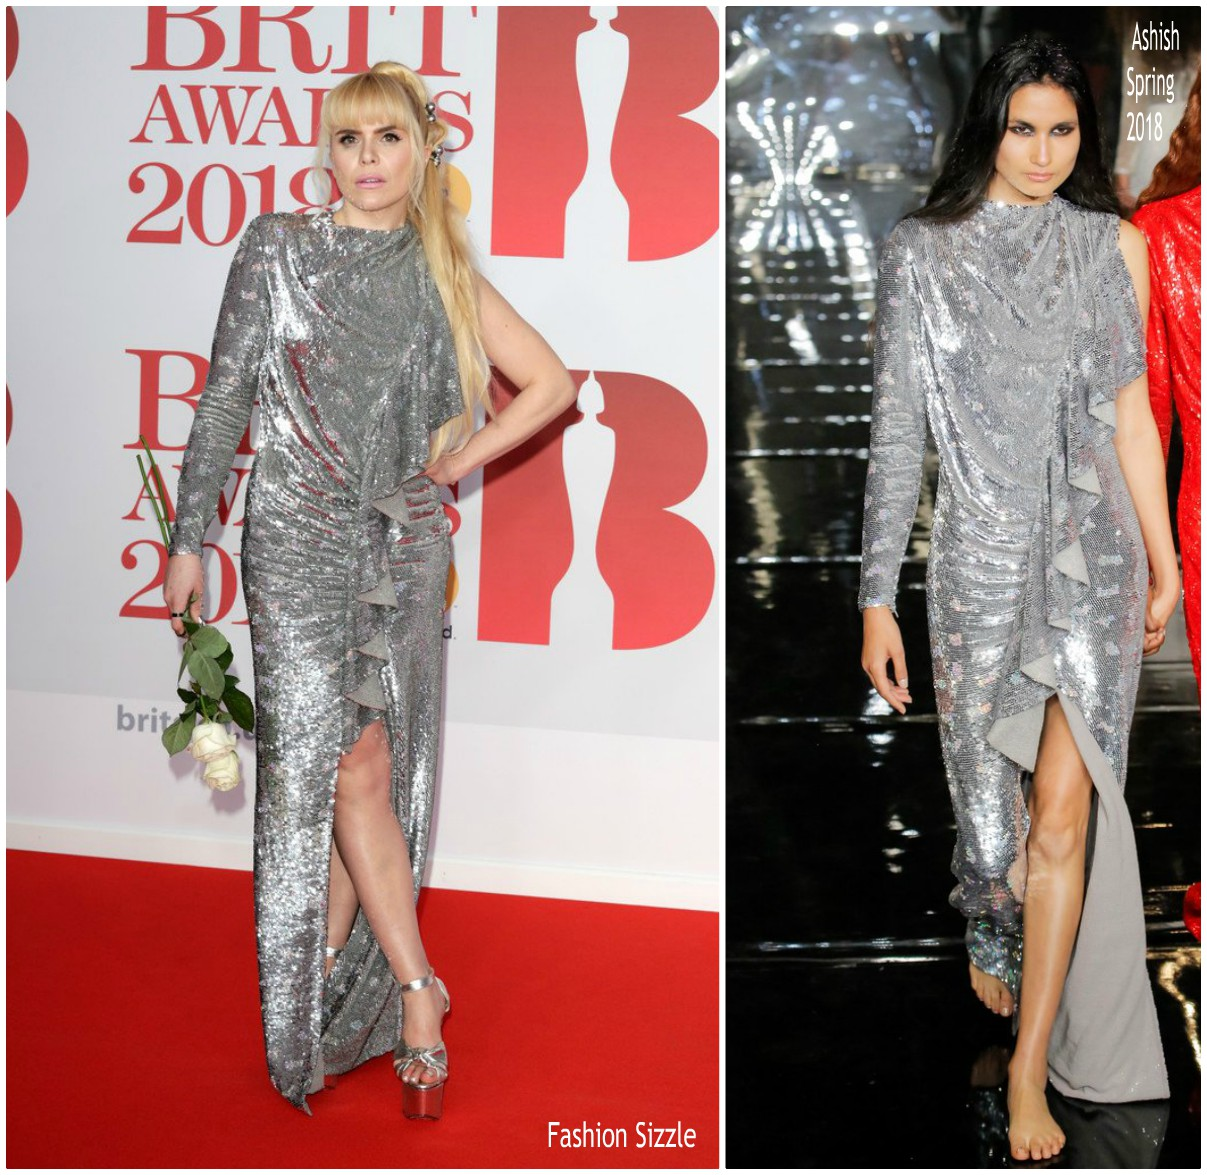 paloma-faith-in-ashish-brit-awards-2018